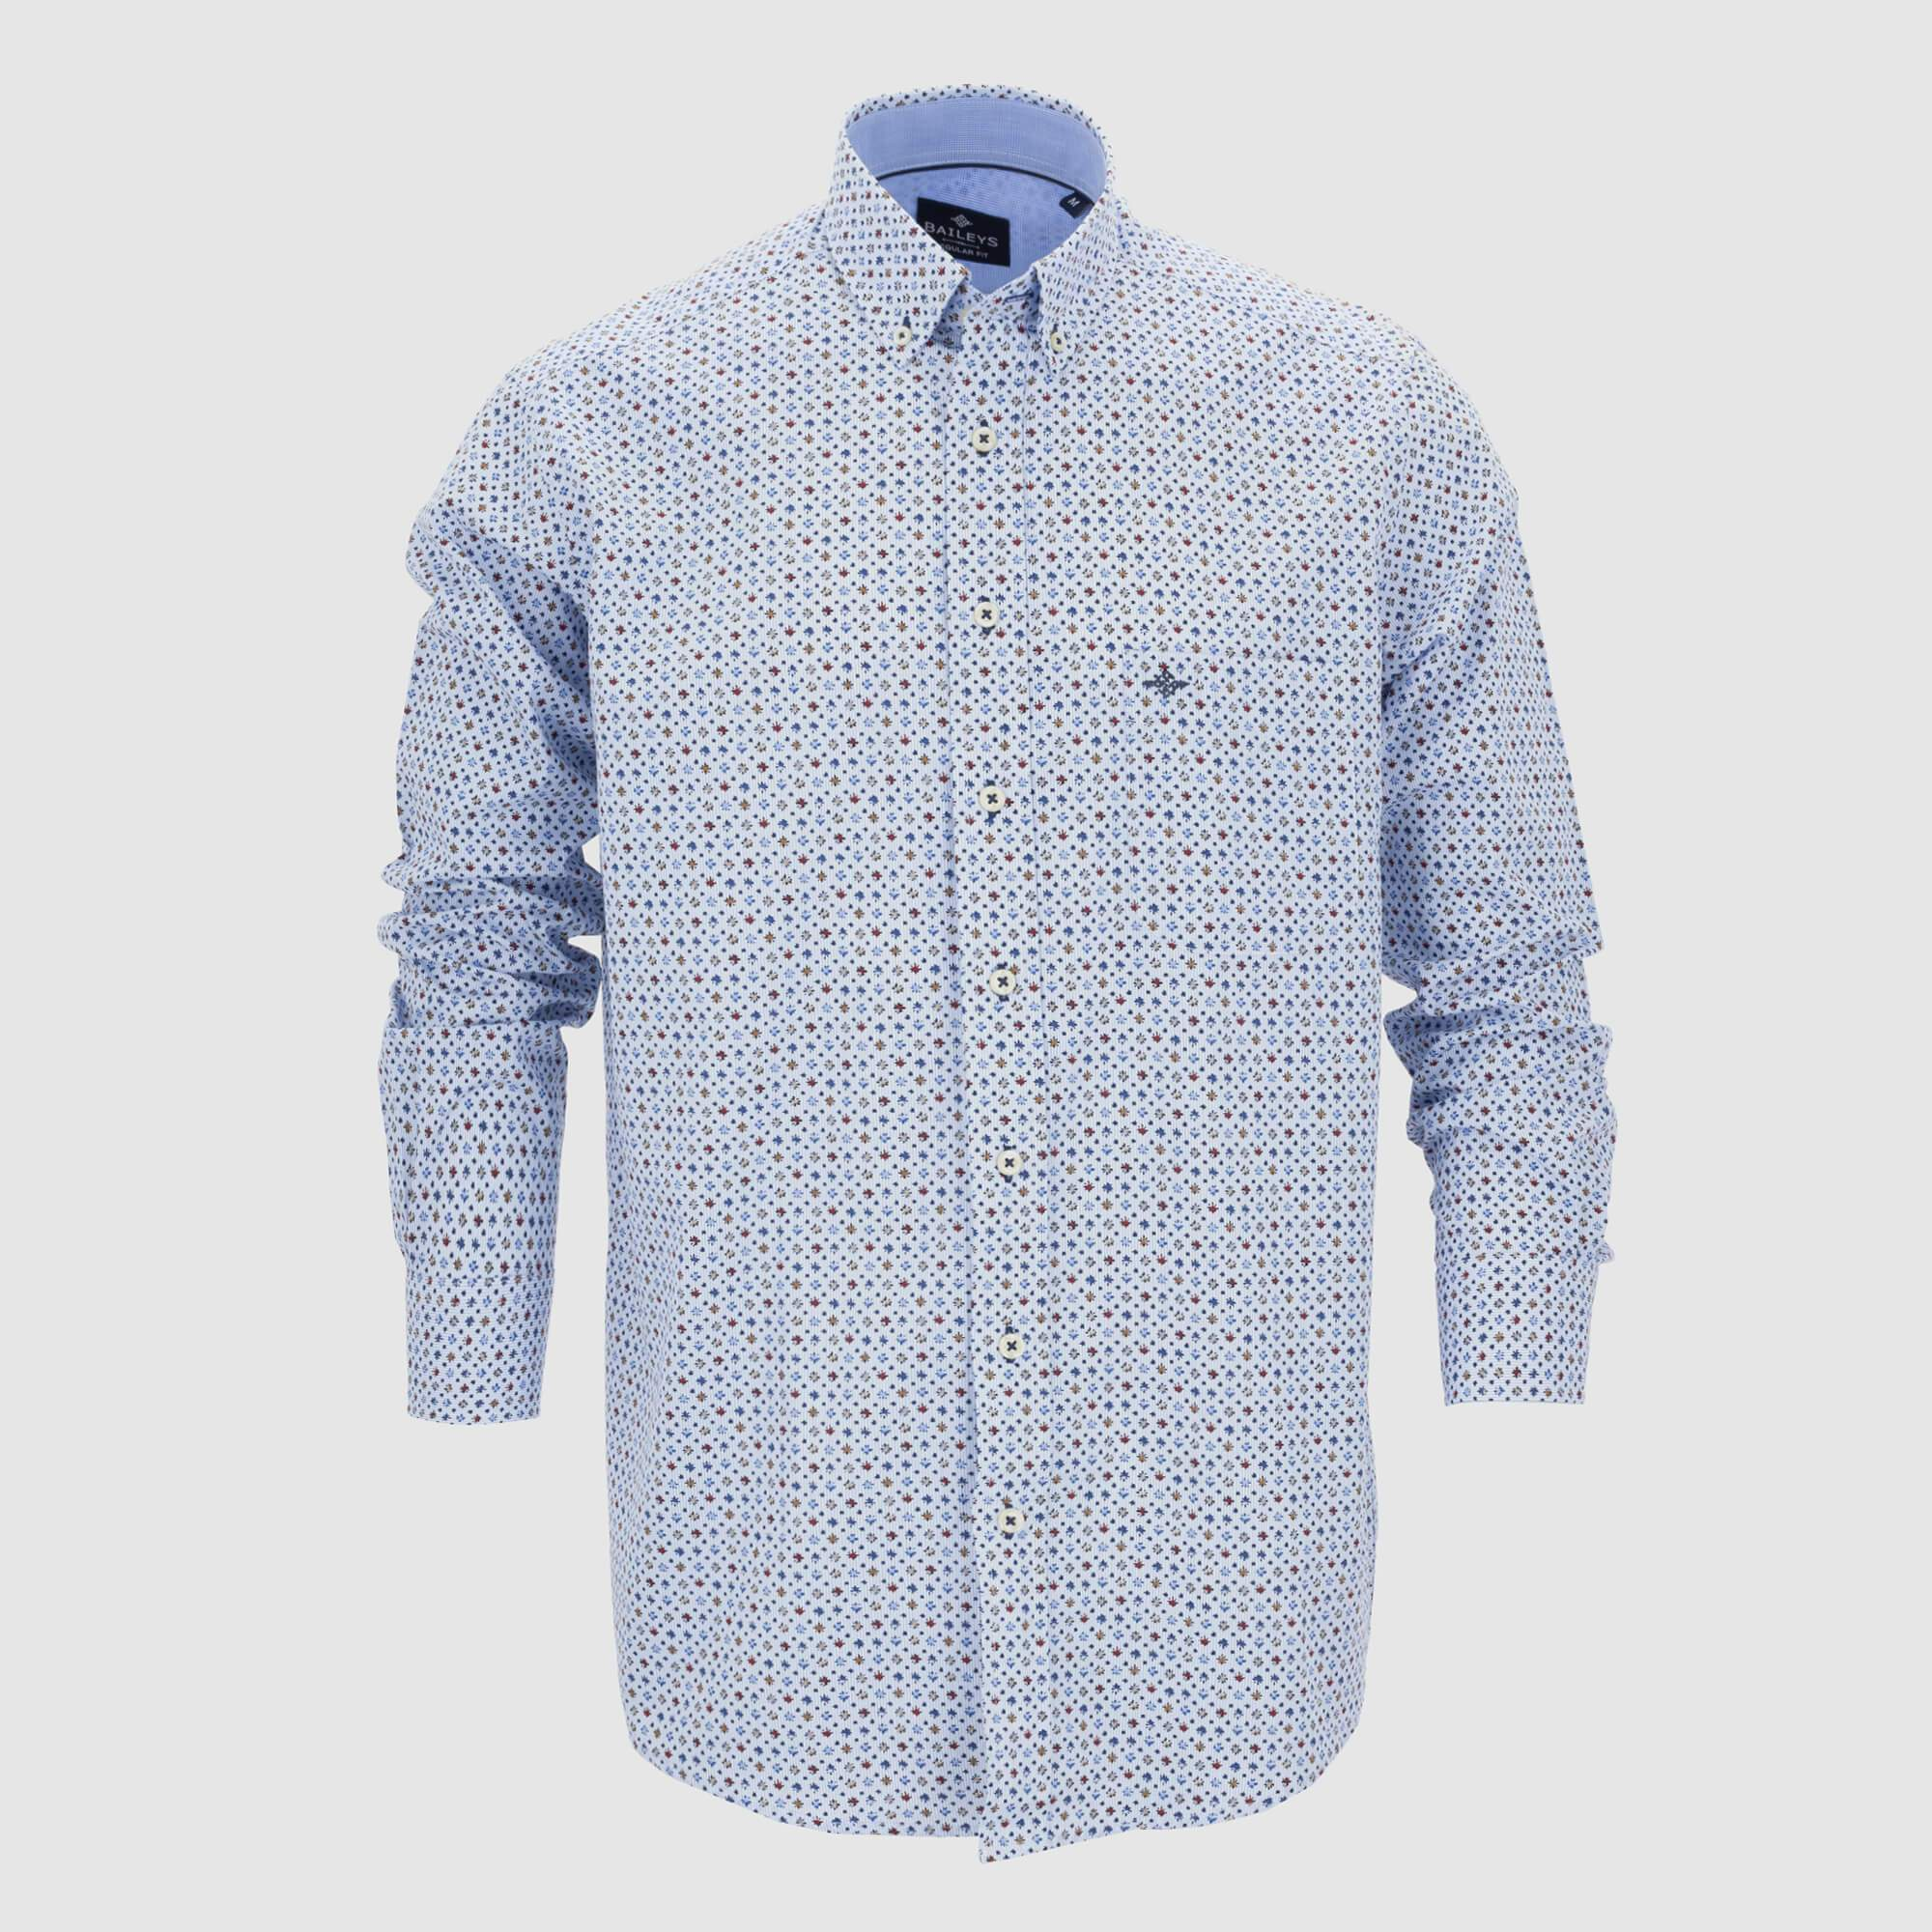 Camisa estampada regular fit 207675